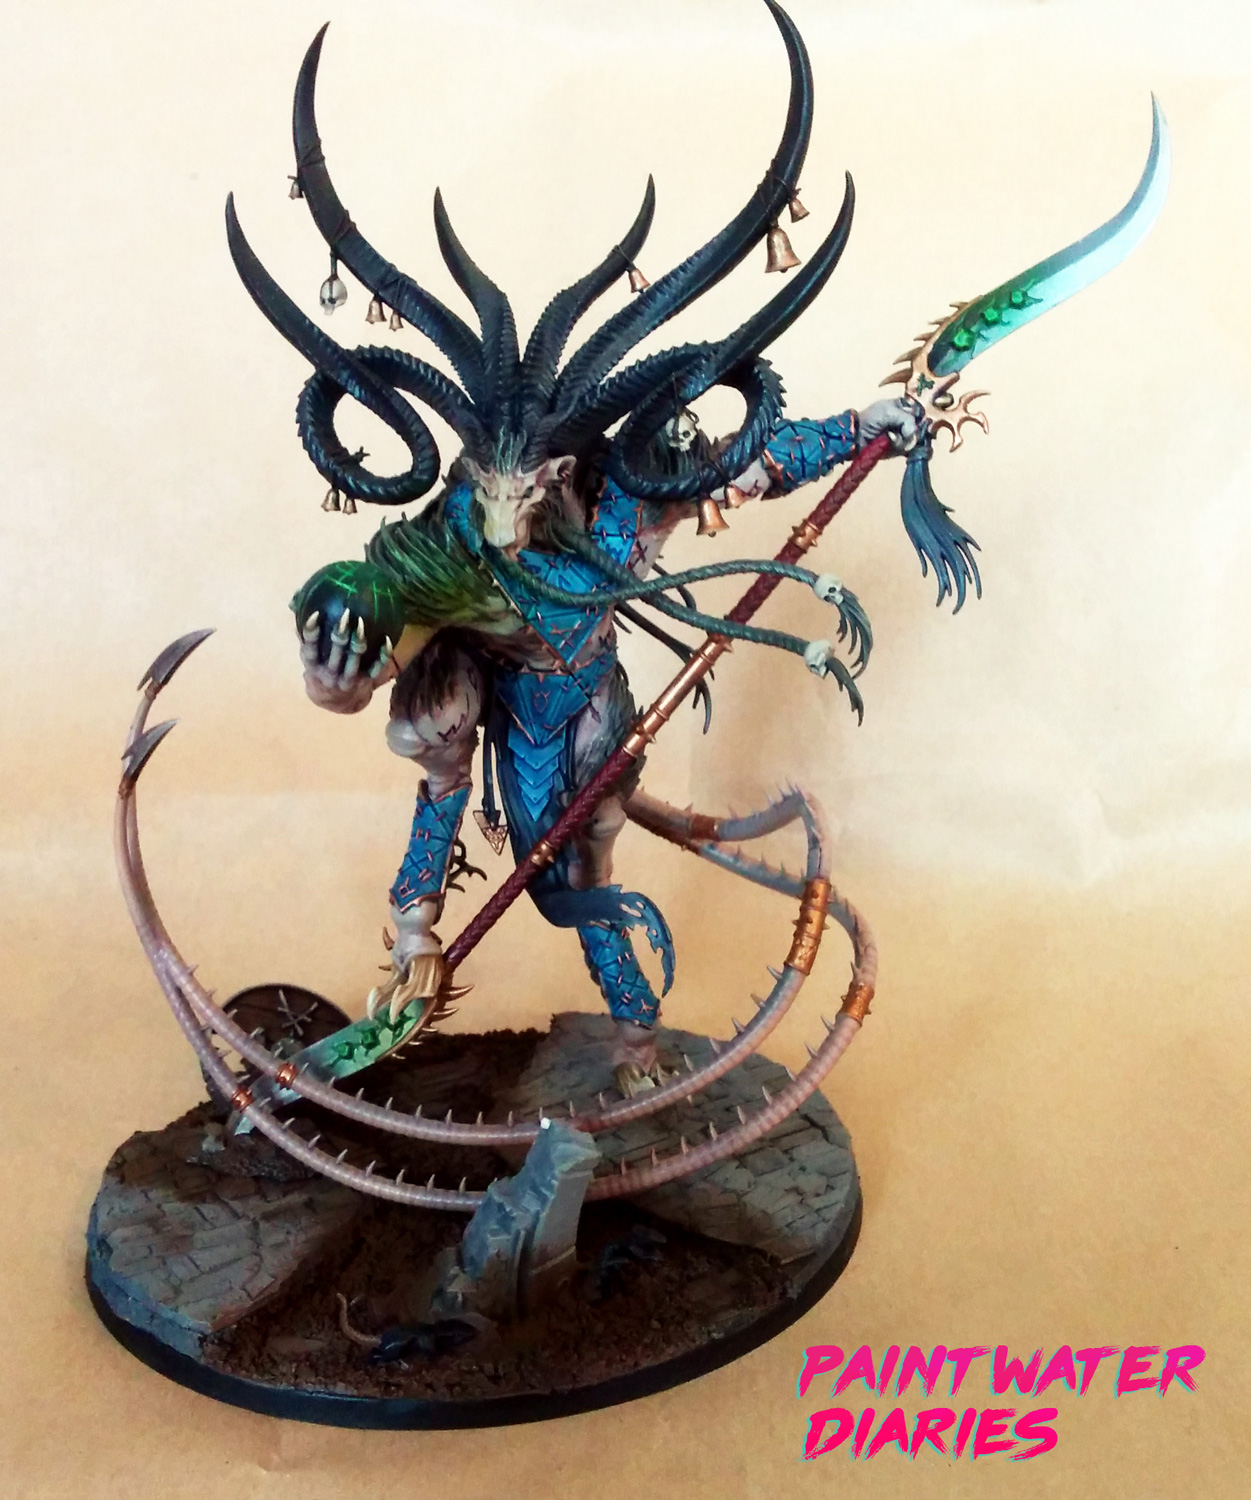 Age of Sigmar Skaven Vermin Lord - Paint Water Diaries